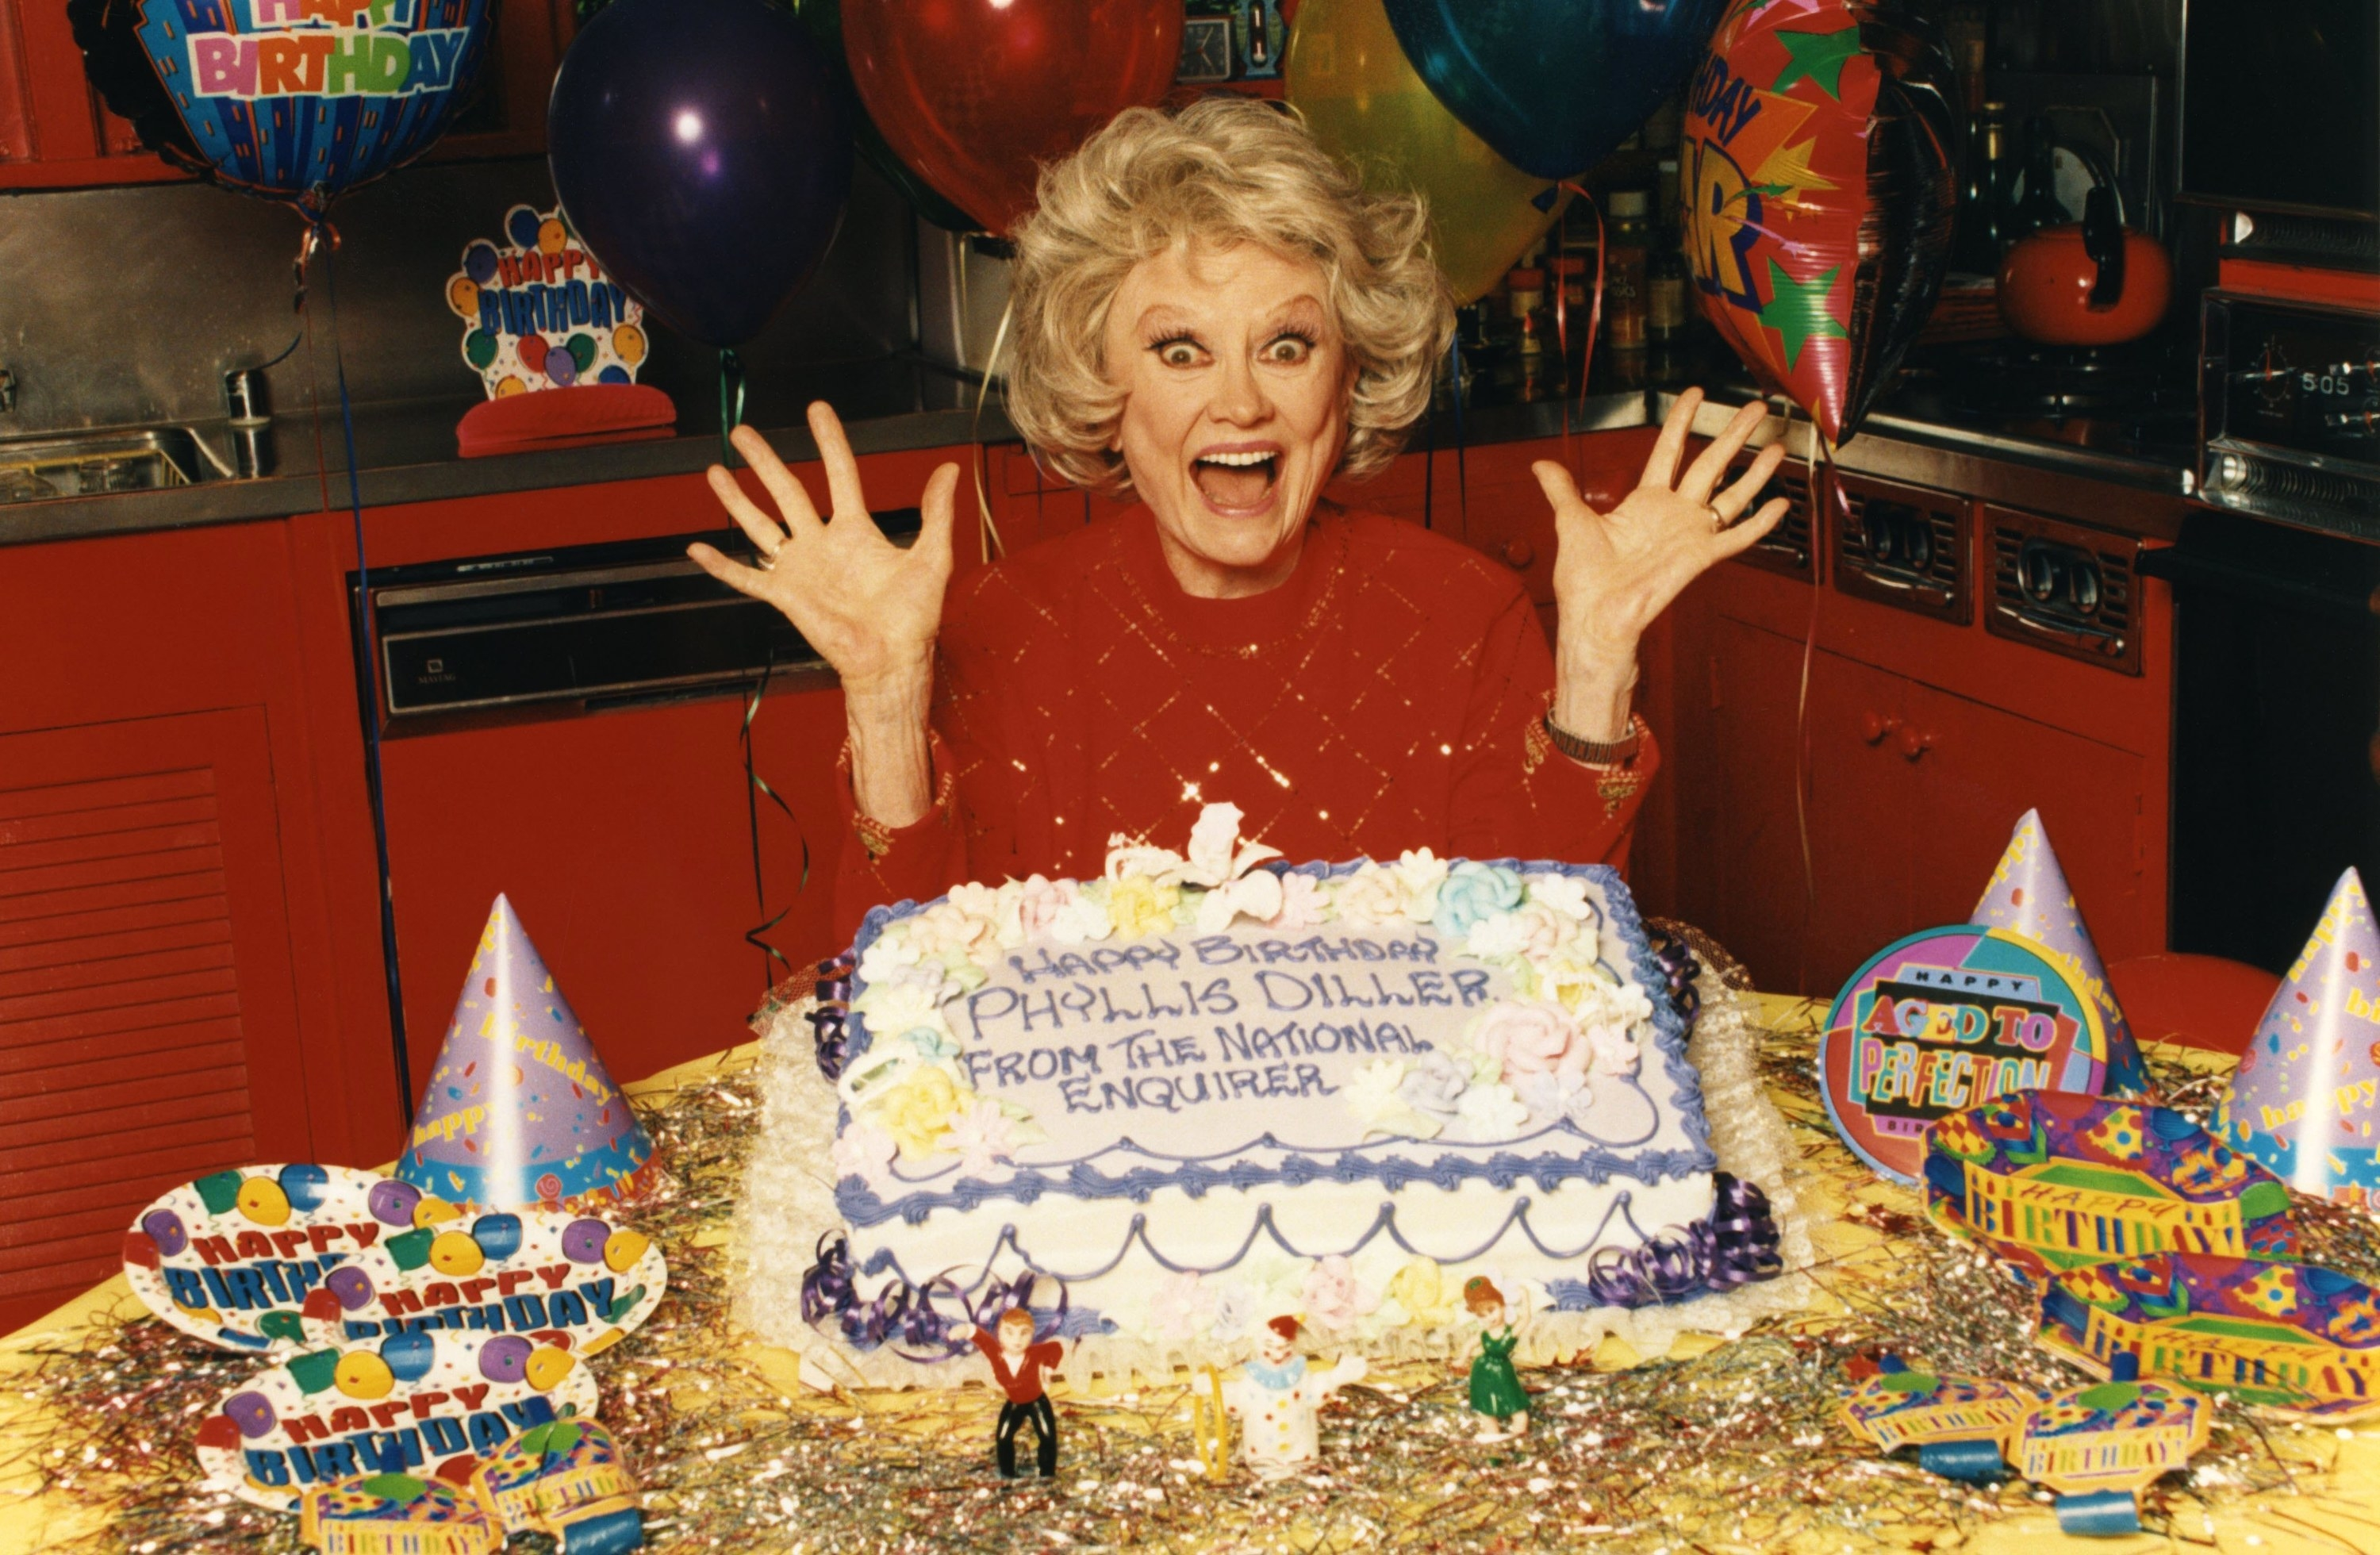 Phyllis Diller surrounded with birthday ephemera and the cake